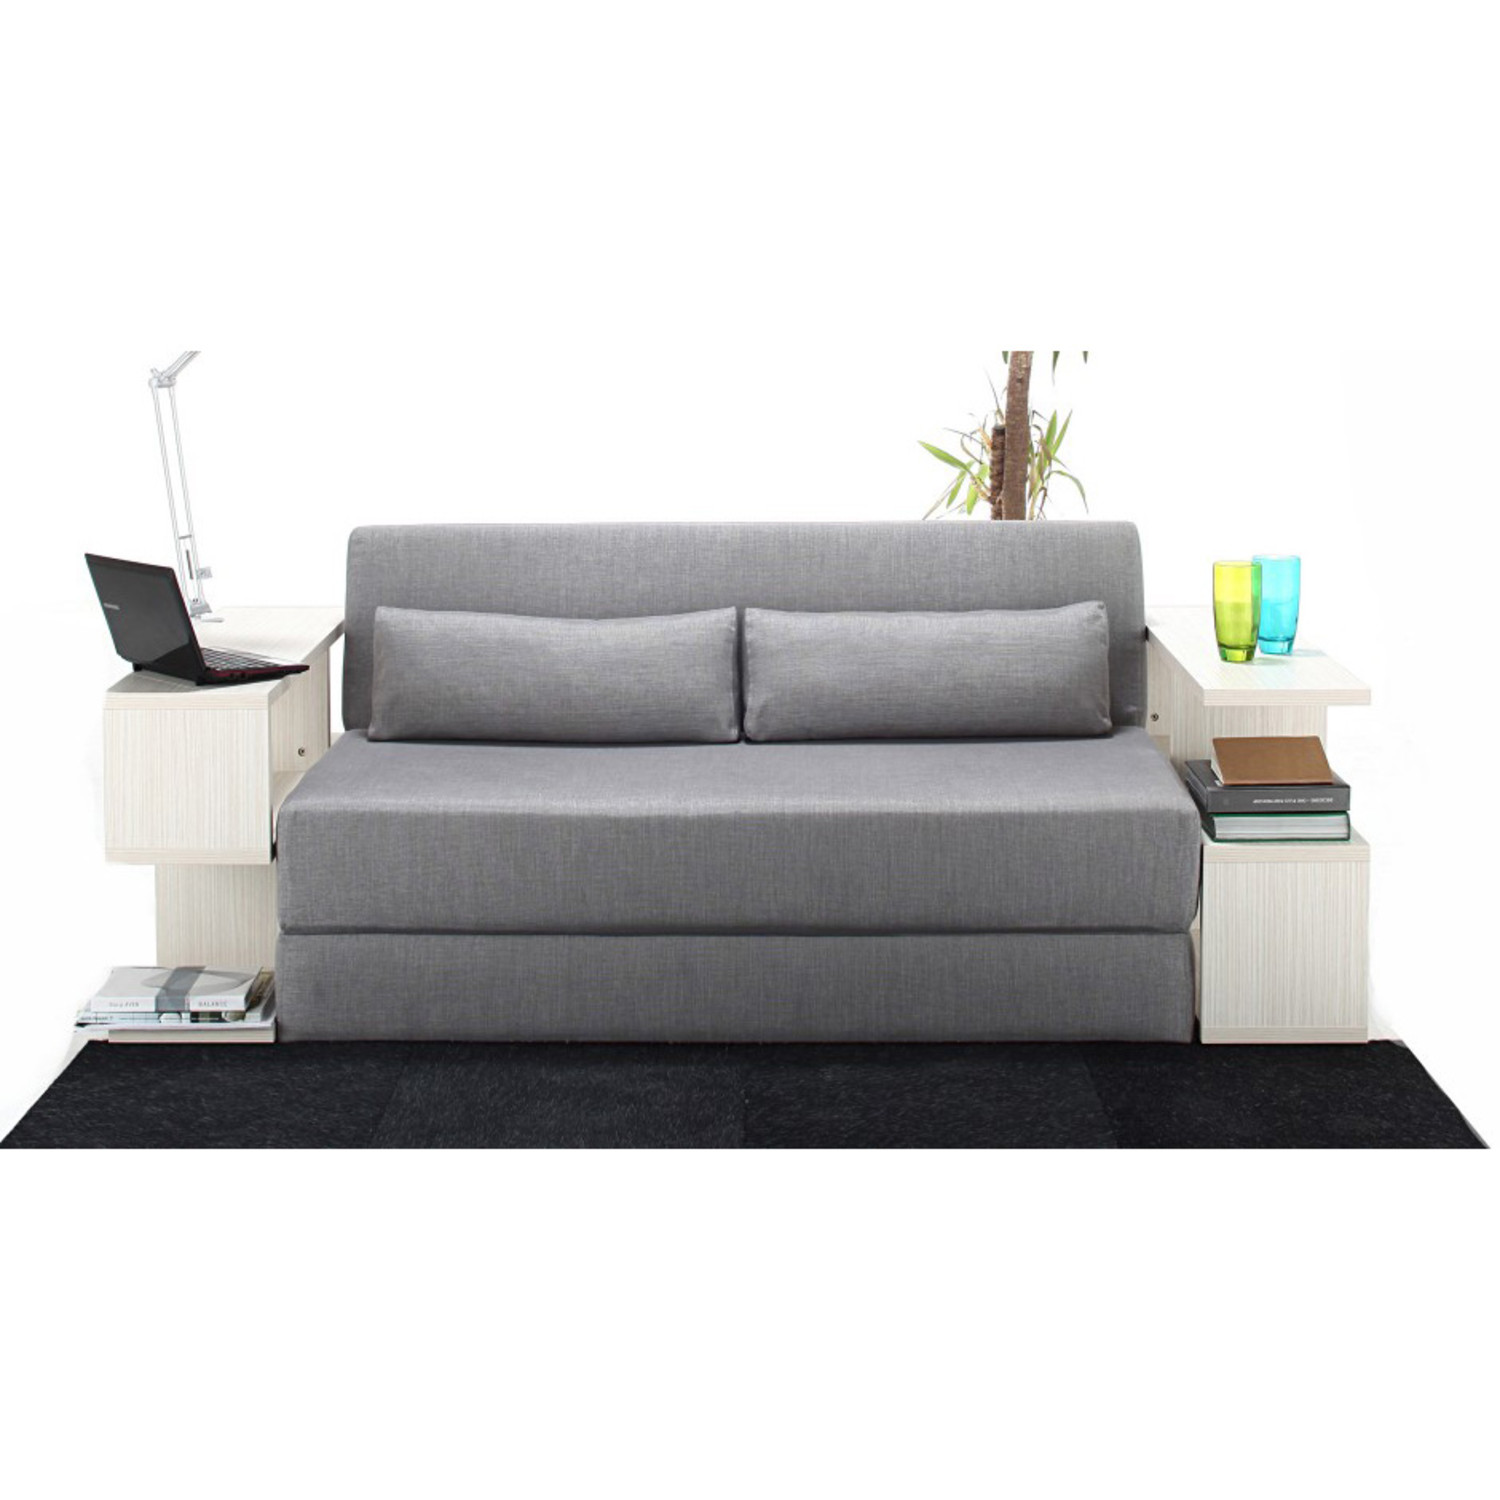 Seatpacking sofa bed light grey nyfu touch of modern for Grey double divan bed